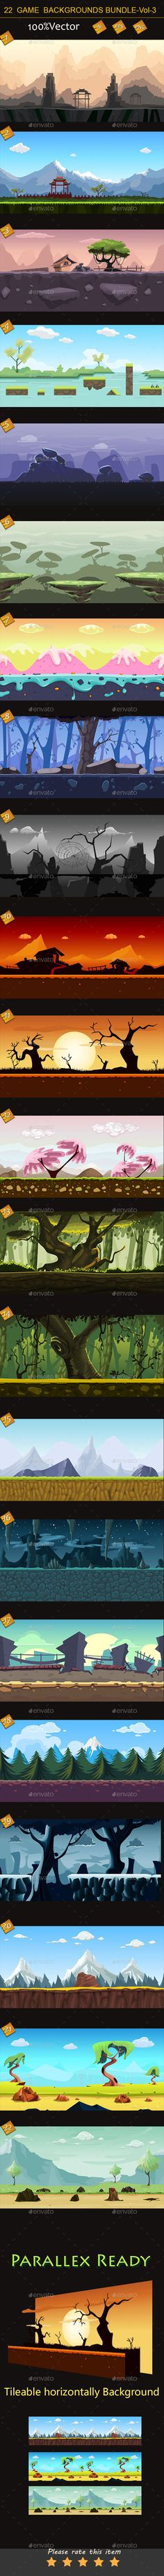 22 Game Backgrounds Bundle Volume 3